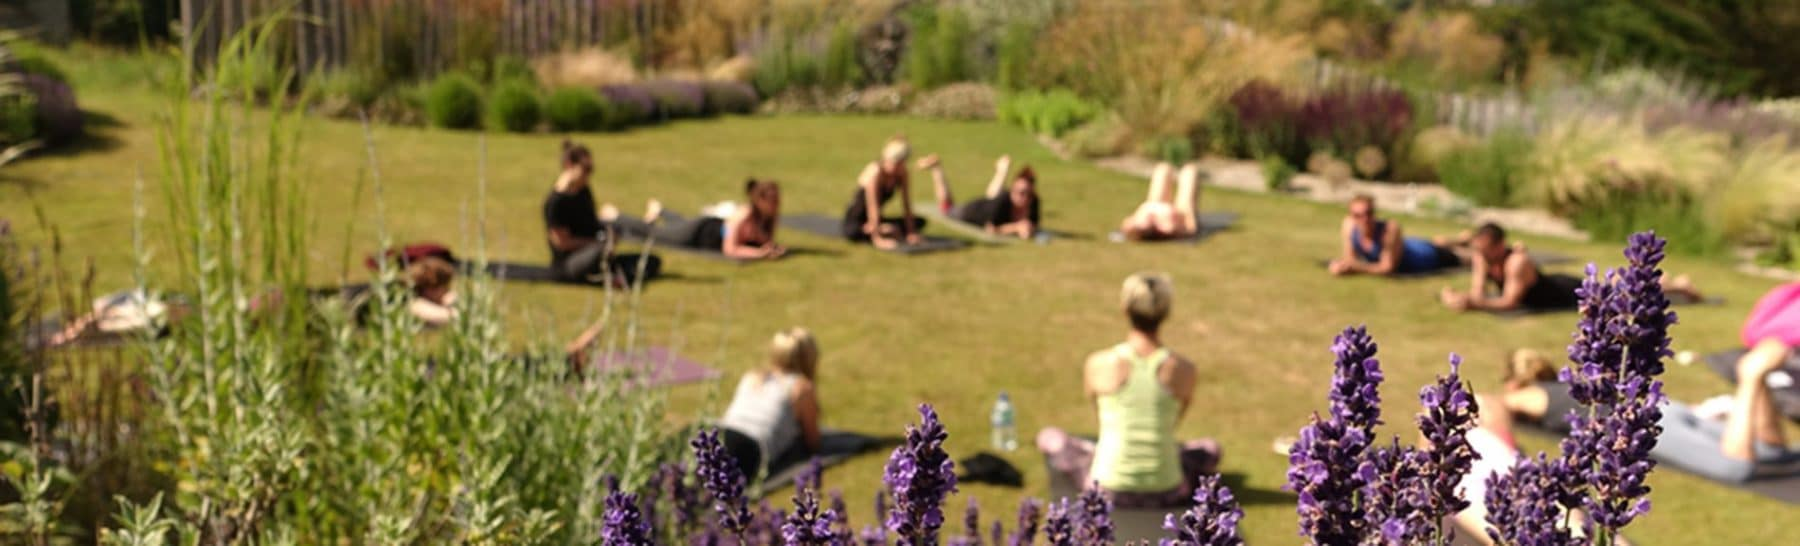 Scott-and-Jock-Header2 Best UK Yoga Retreats